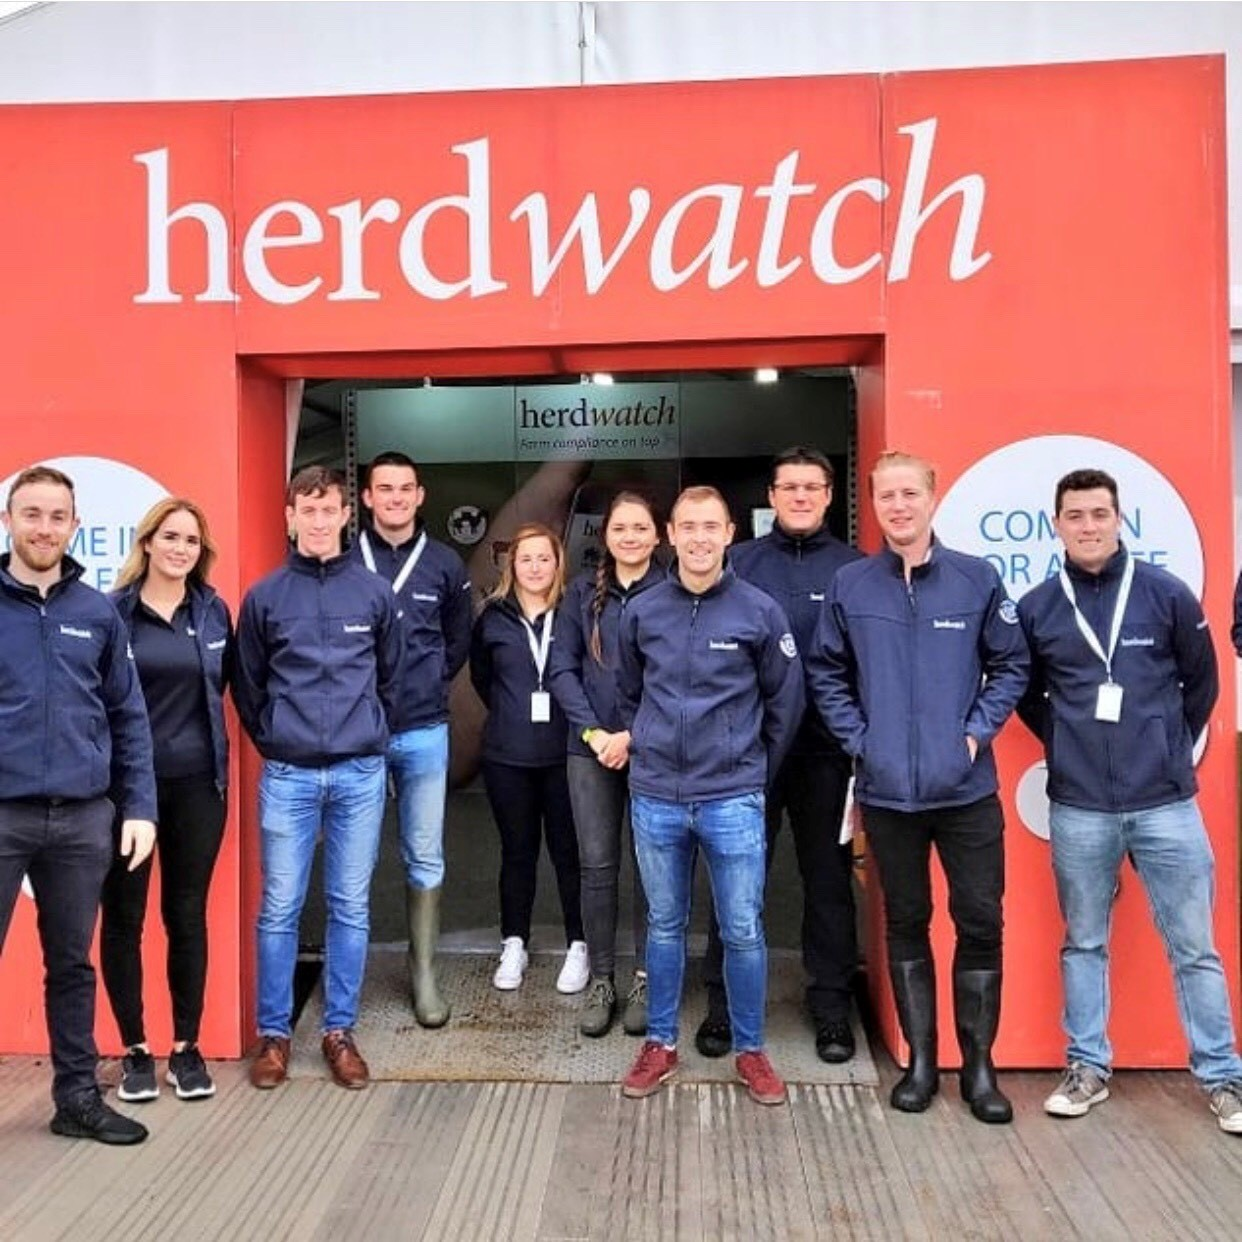 ploughing herdwatch team photo 15